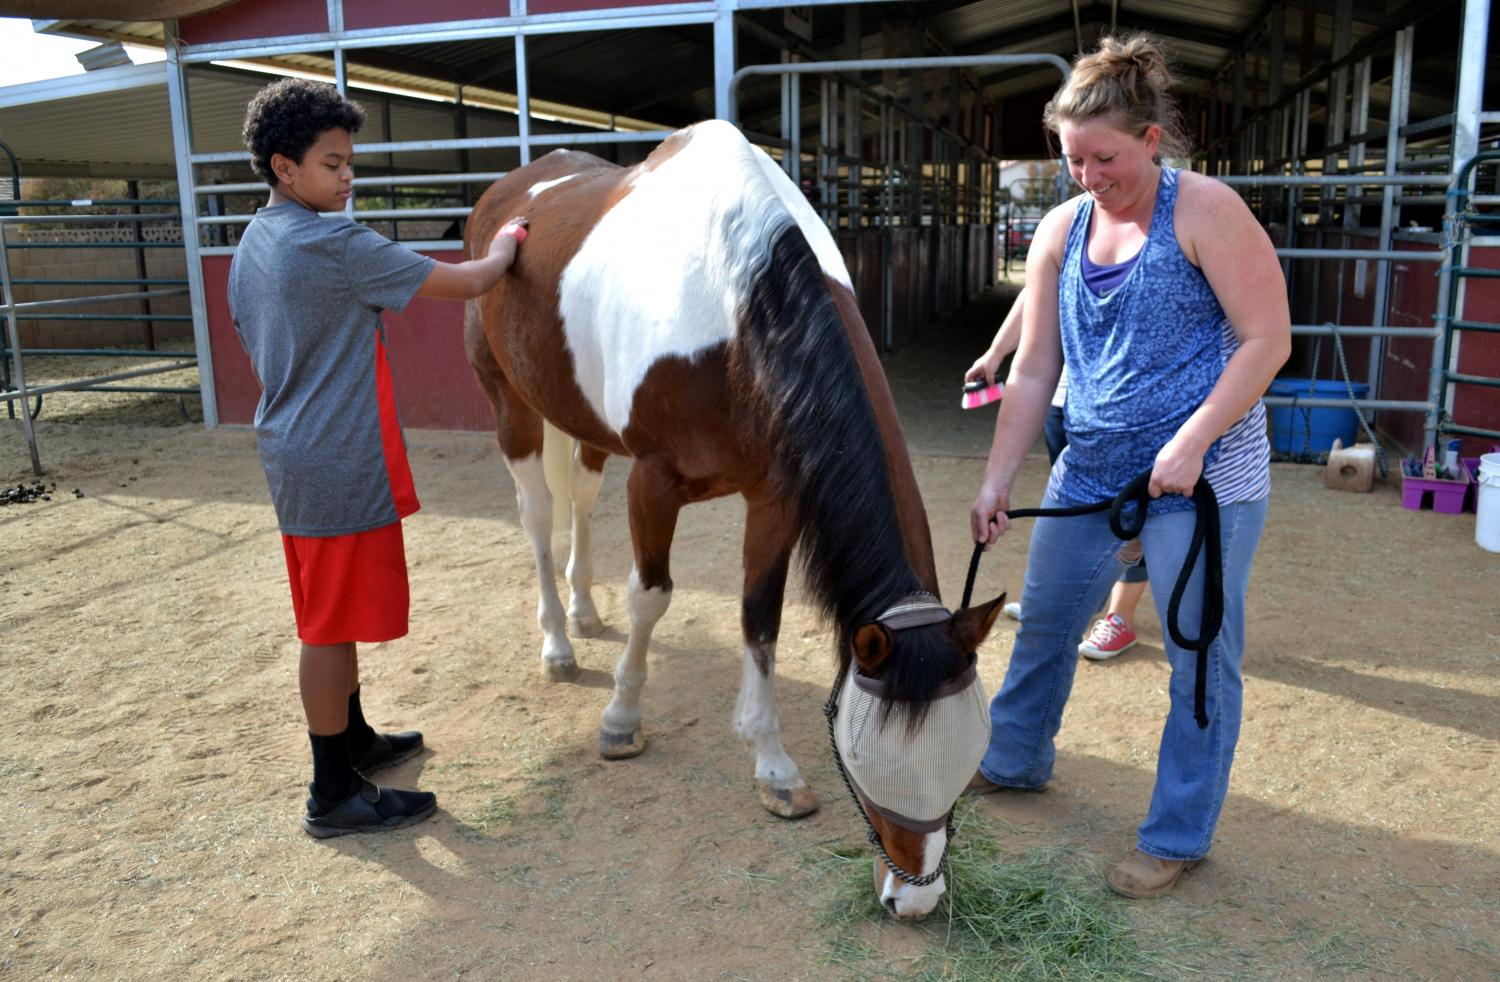 horse grooming with brush